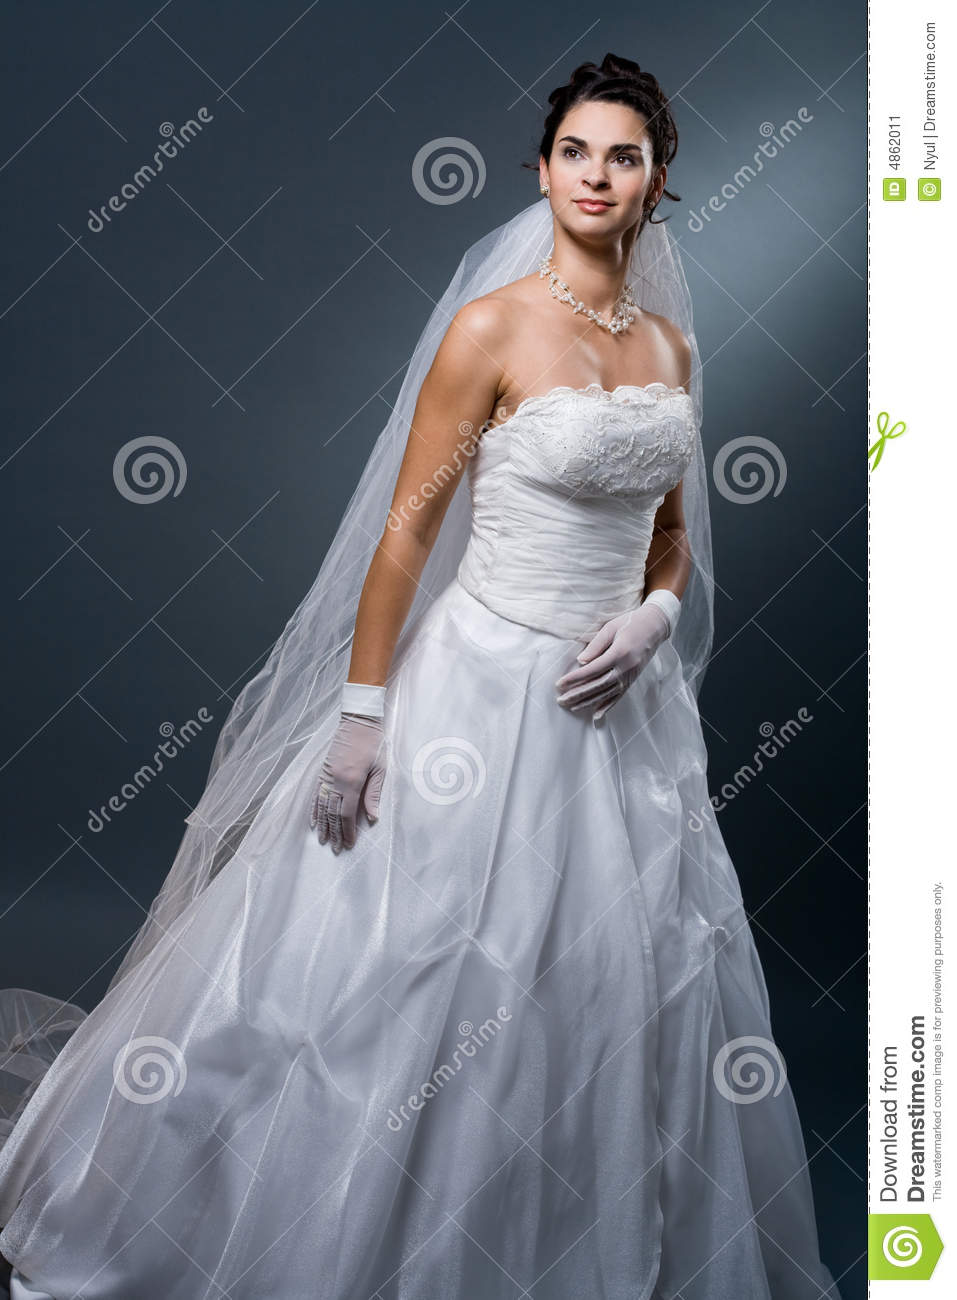 Removed (has mature bride thumbs opinion obvious